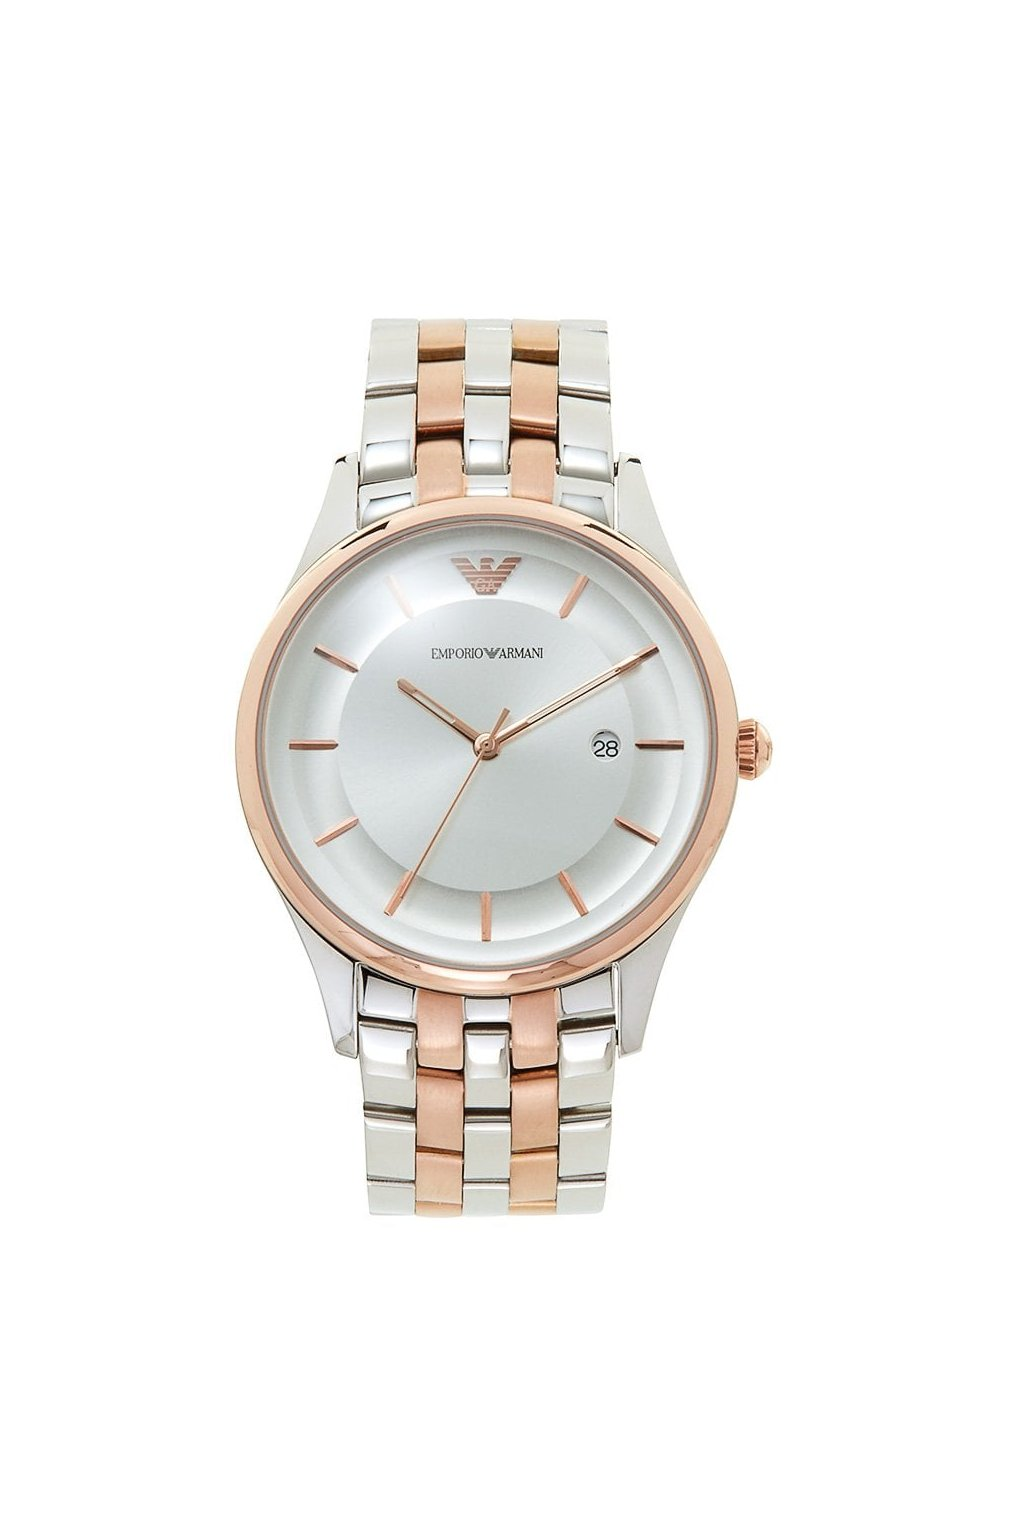 emporio armani watches ar11044 rose gold silver stainless steel mens watch p31893 37035 image